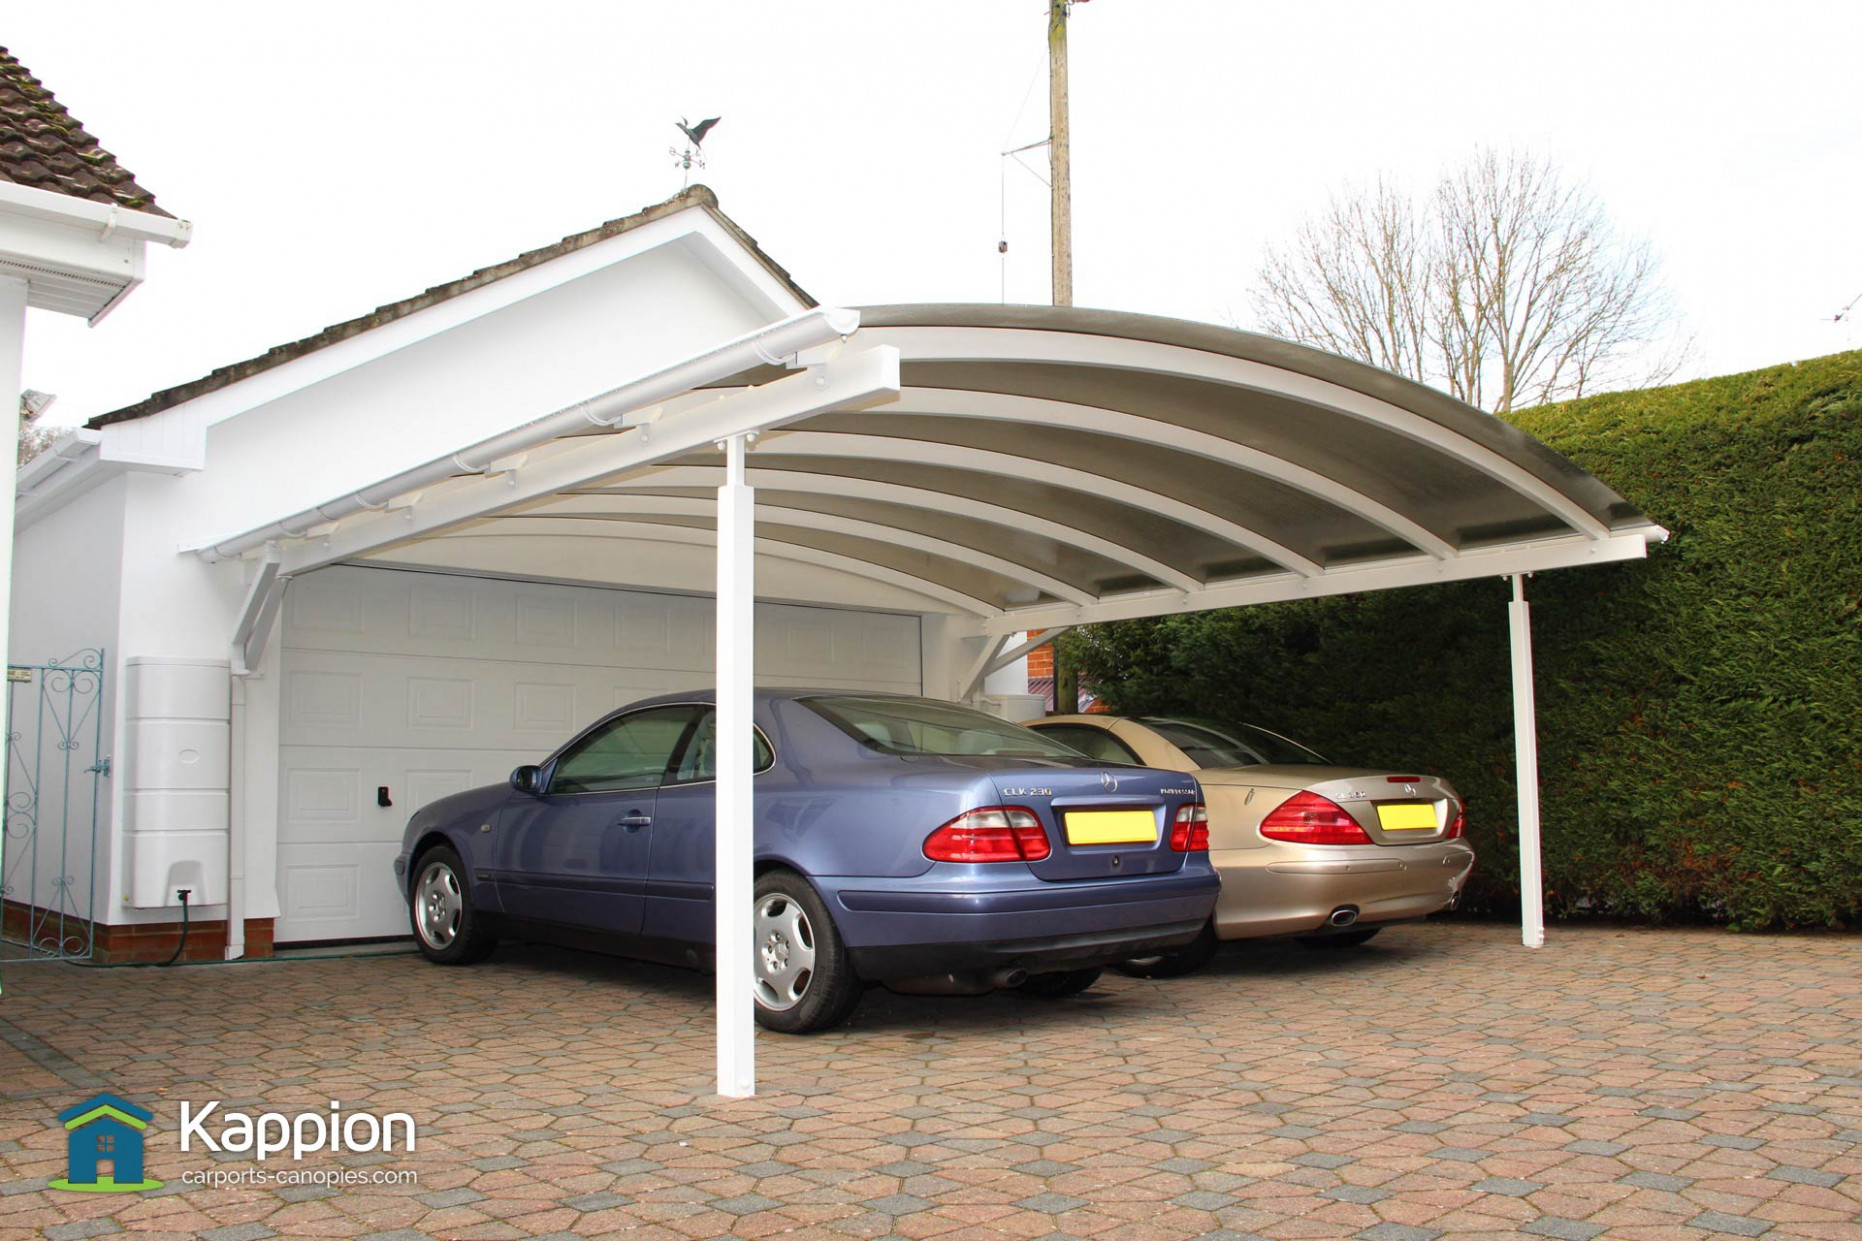 Double Carport The Ultimate Two Car Canopy | Kappion ..